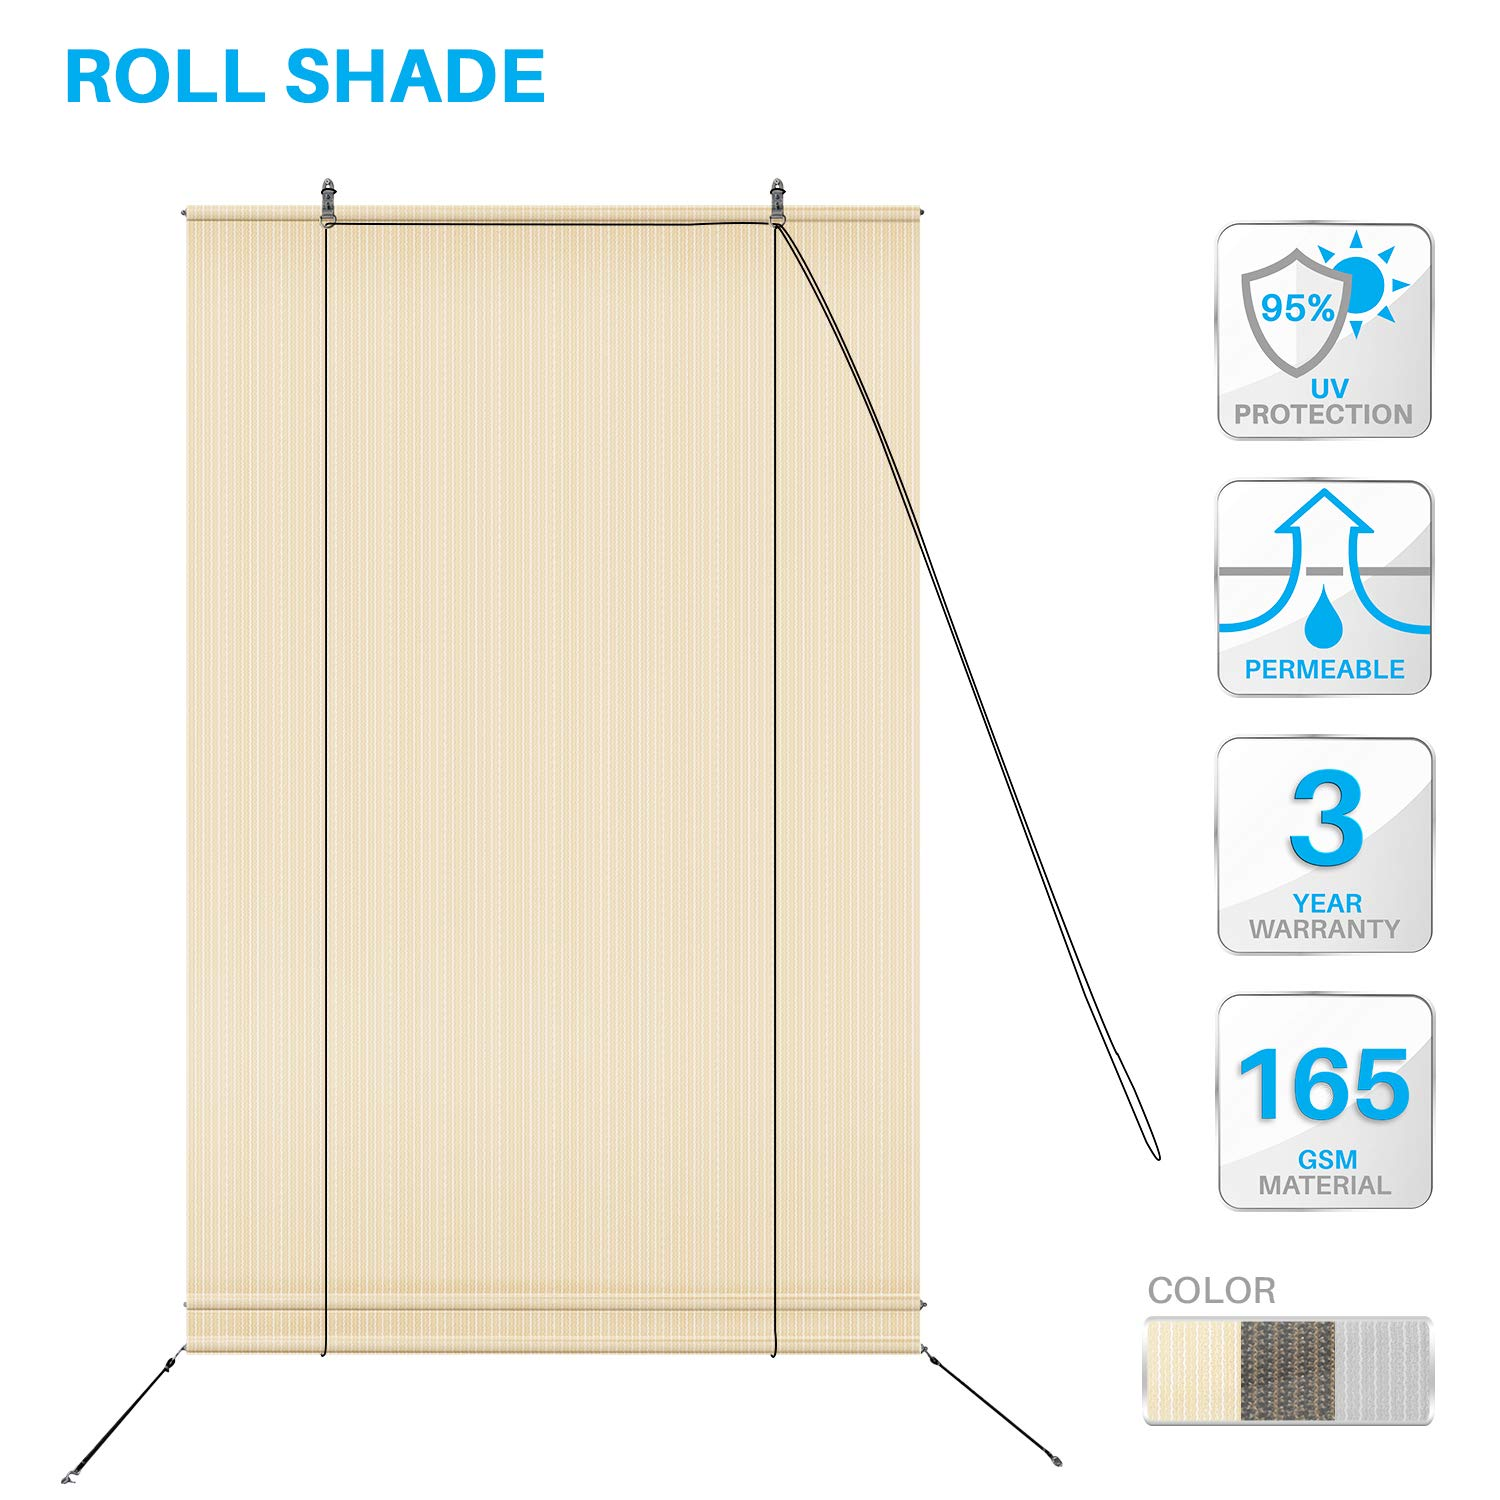 PATIO Paradise Roll up Shades Roller Shade 7'Wx6'H Outdoor Shade Blind Pull Shade Privacy Screen Porch Deck Balcony Pergola Trellis Carport Beige